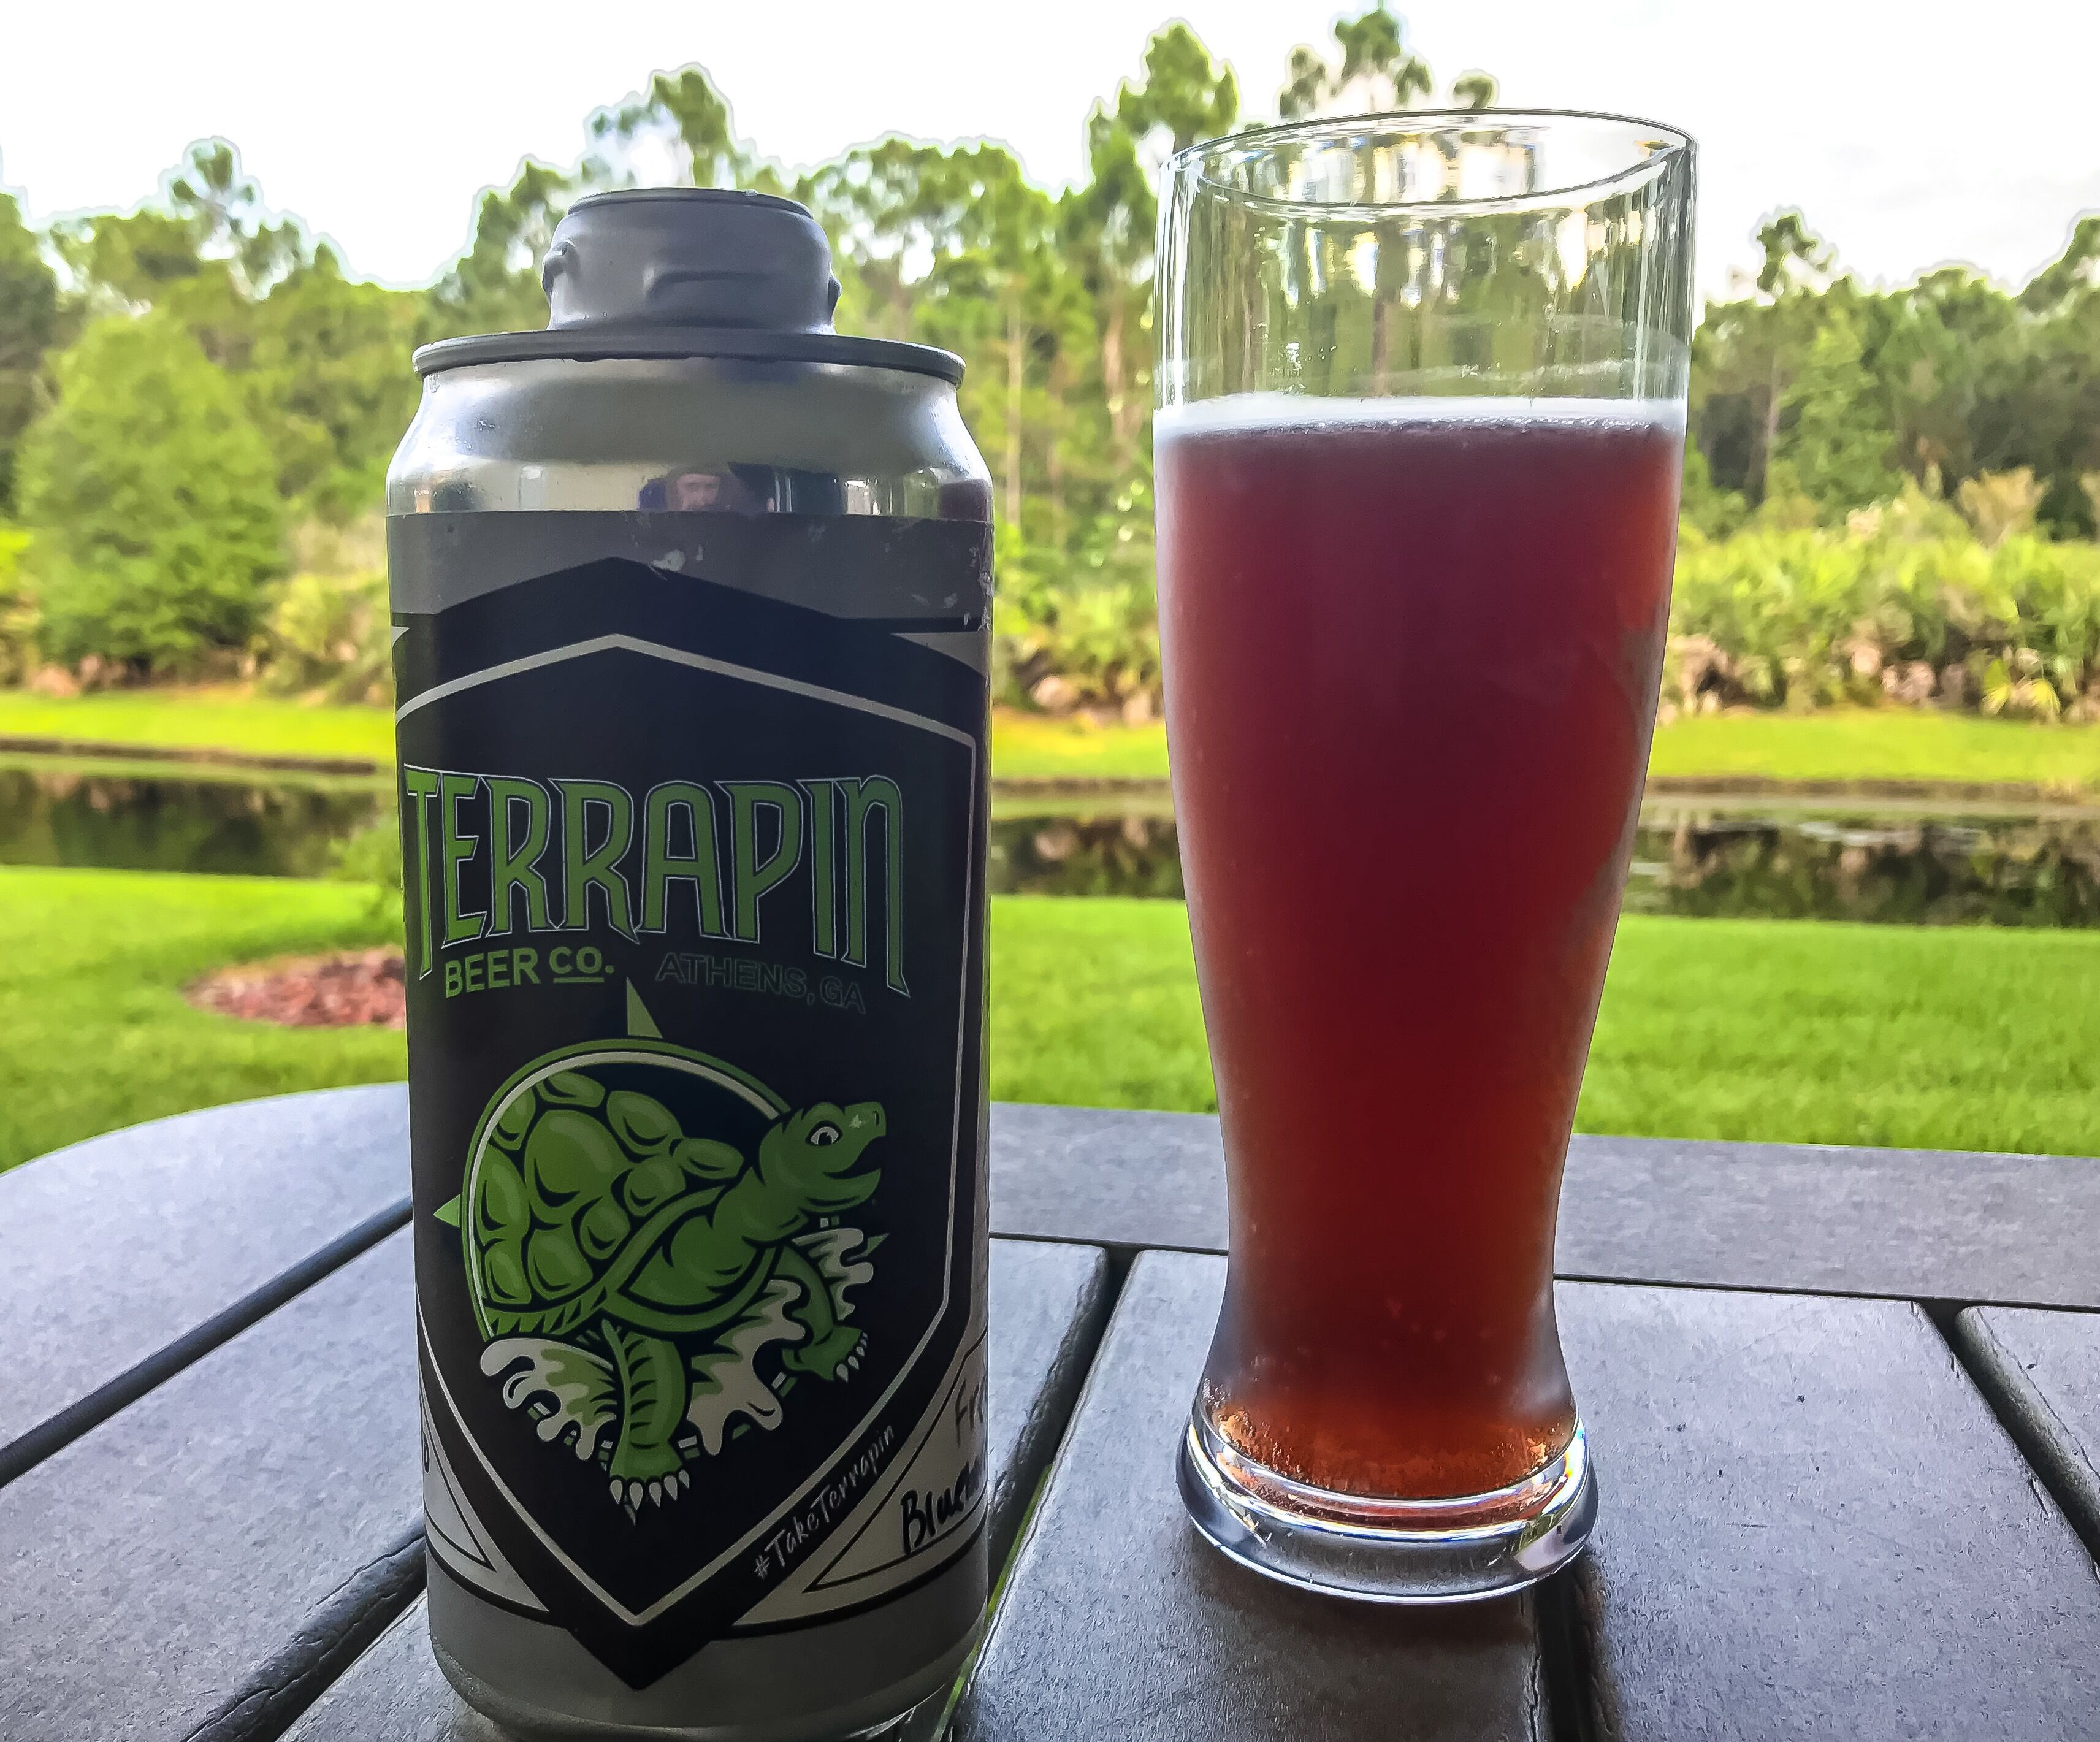 Terrapin Beer scores a home run with Frenchy's Blues beer